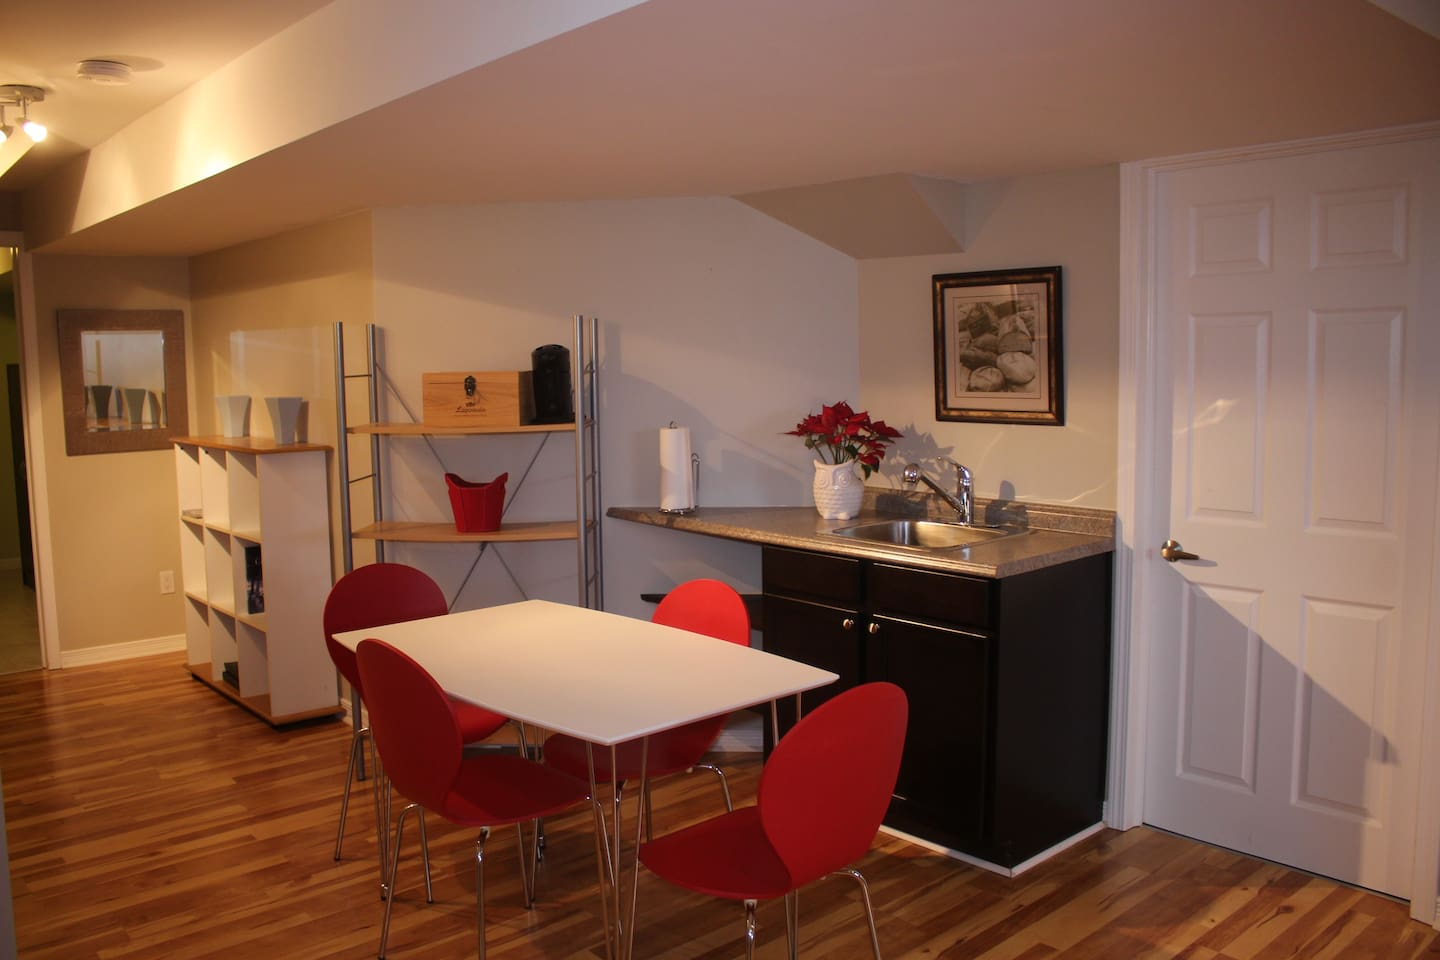 Private basement apartment with open floor plan, view to the kitchenette area